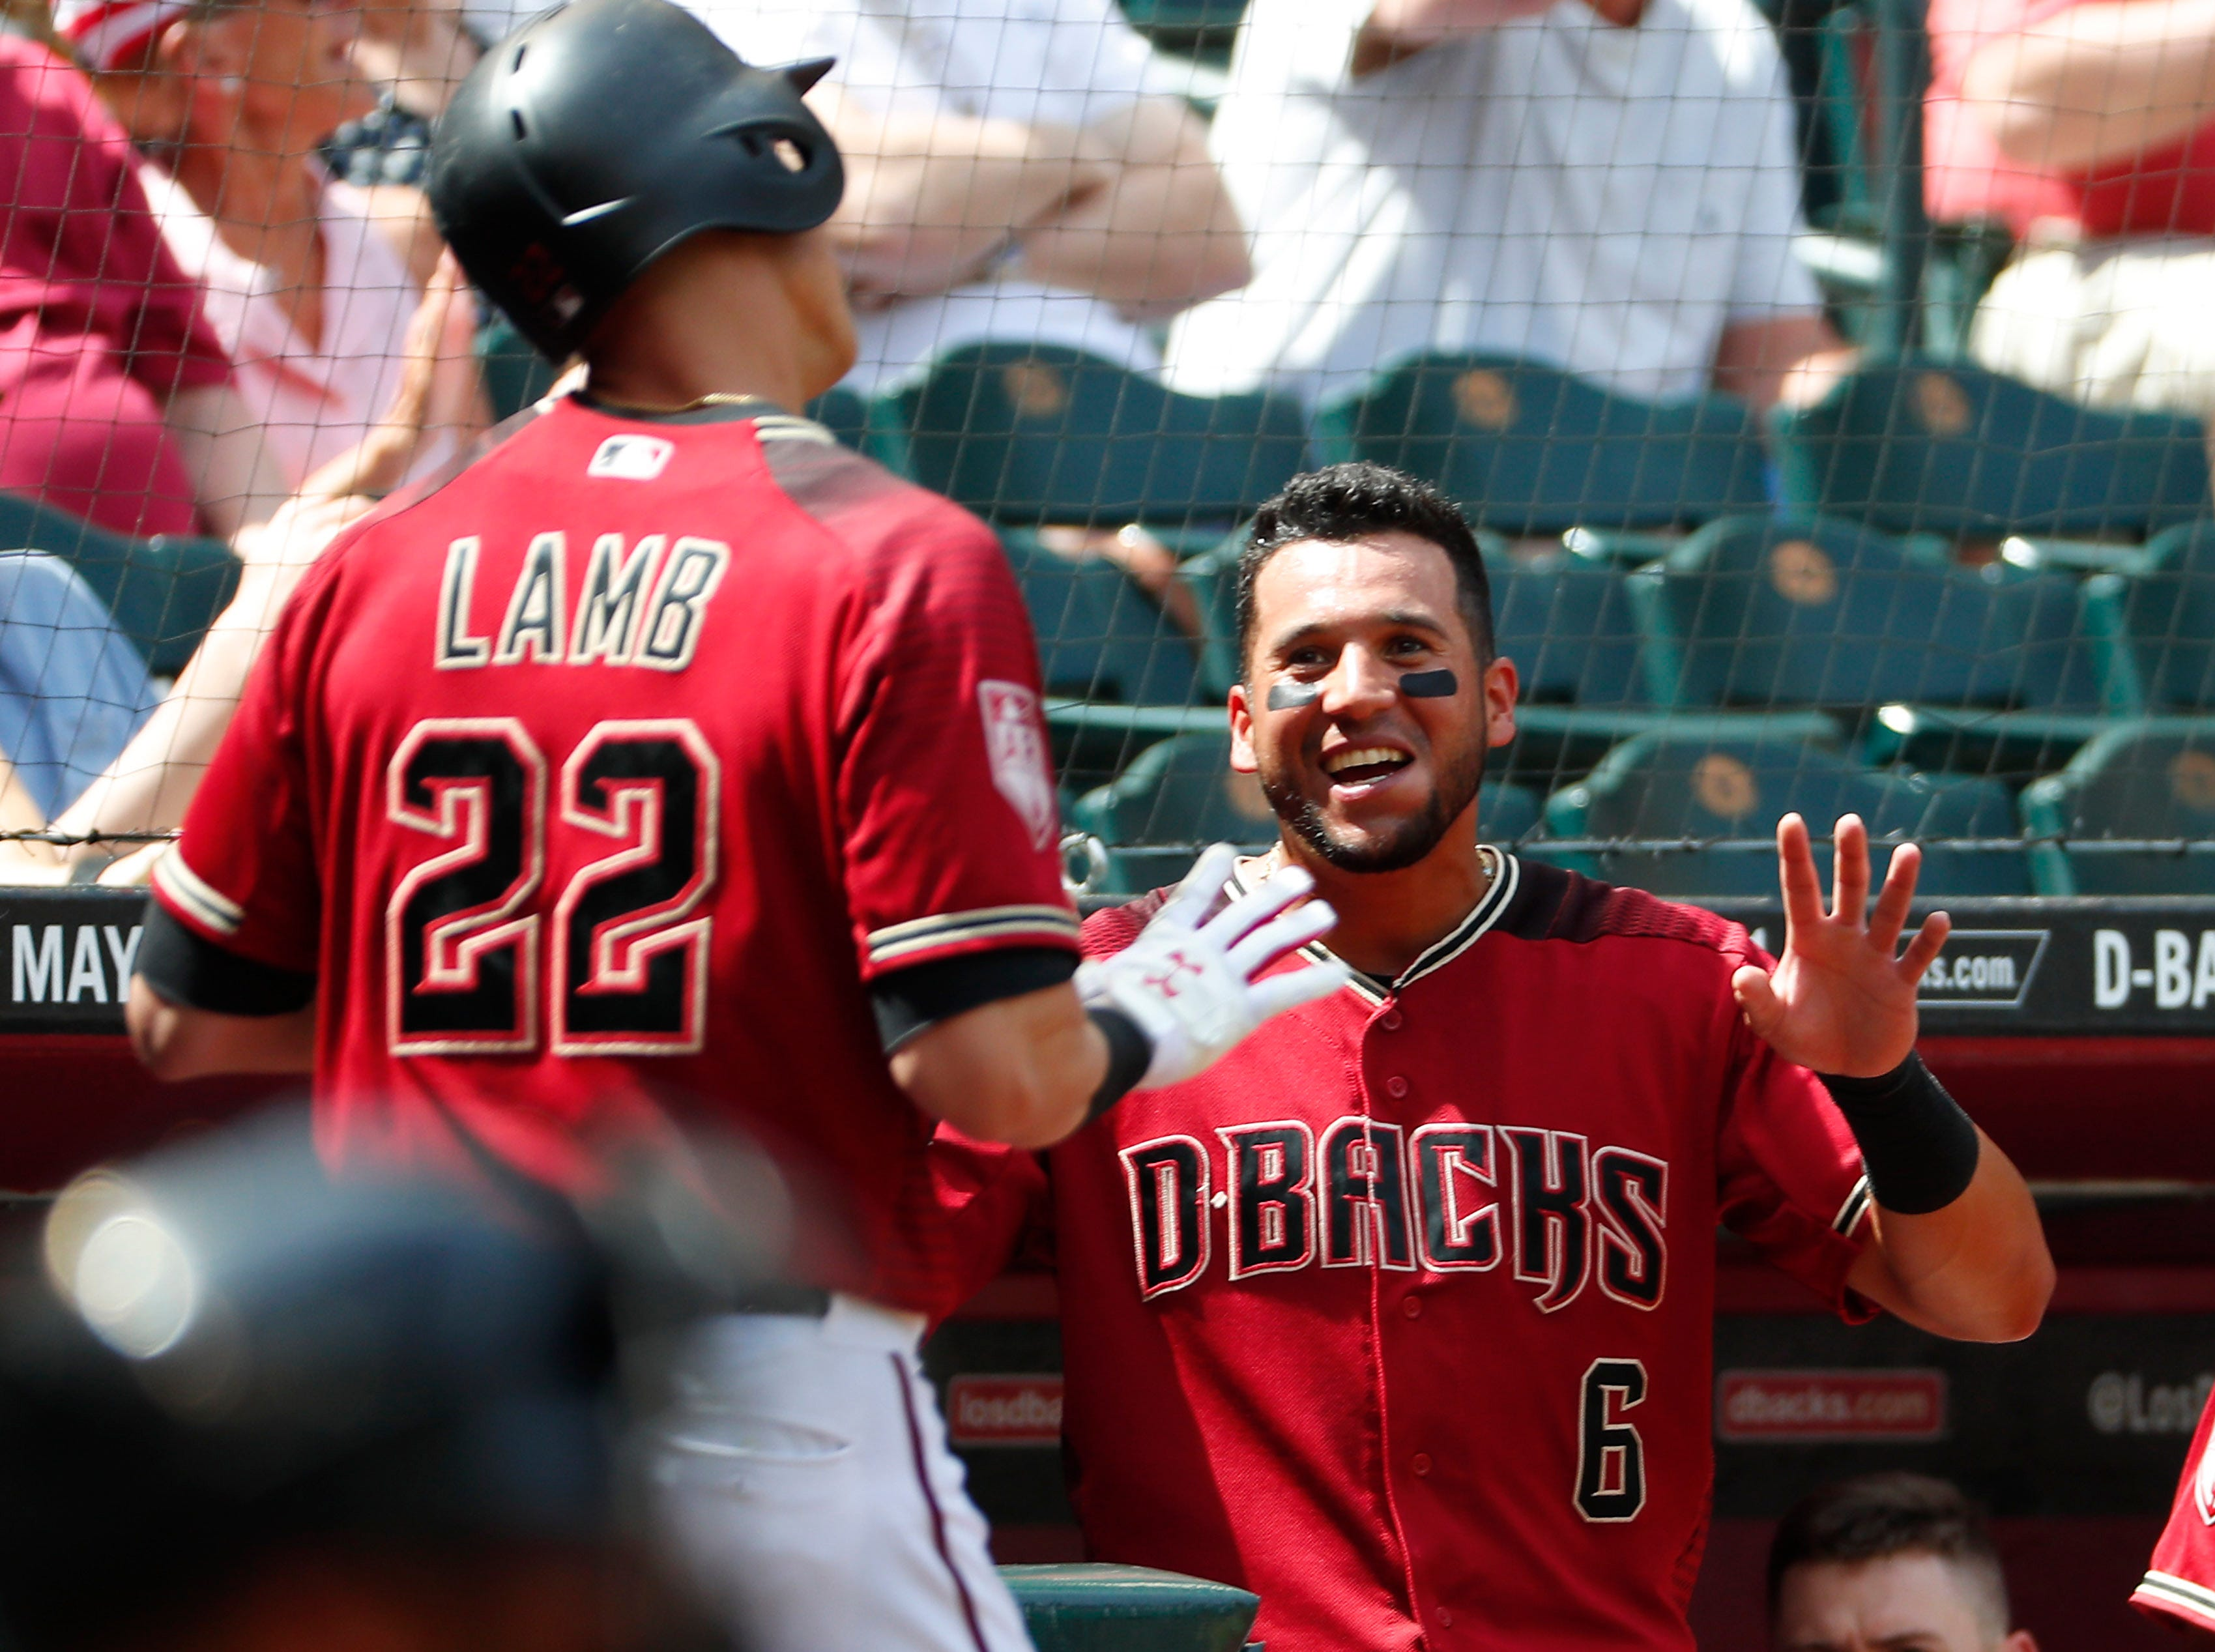 Arizona Diamondbacks first baseman Jake Lamb (22) is congratulated by left fielder David Peralta (6) after hitting a solo home run against the Chicago White Sox during spring training action at Chase Field March 26, 2019.